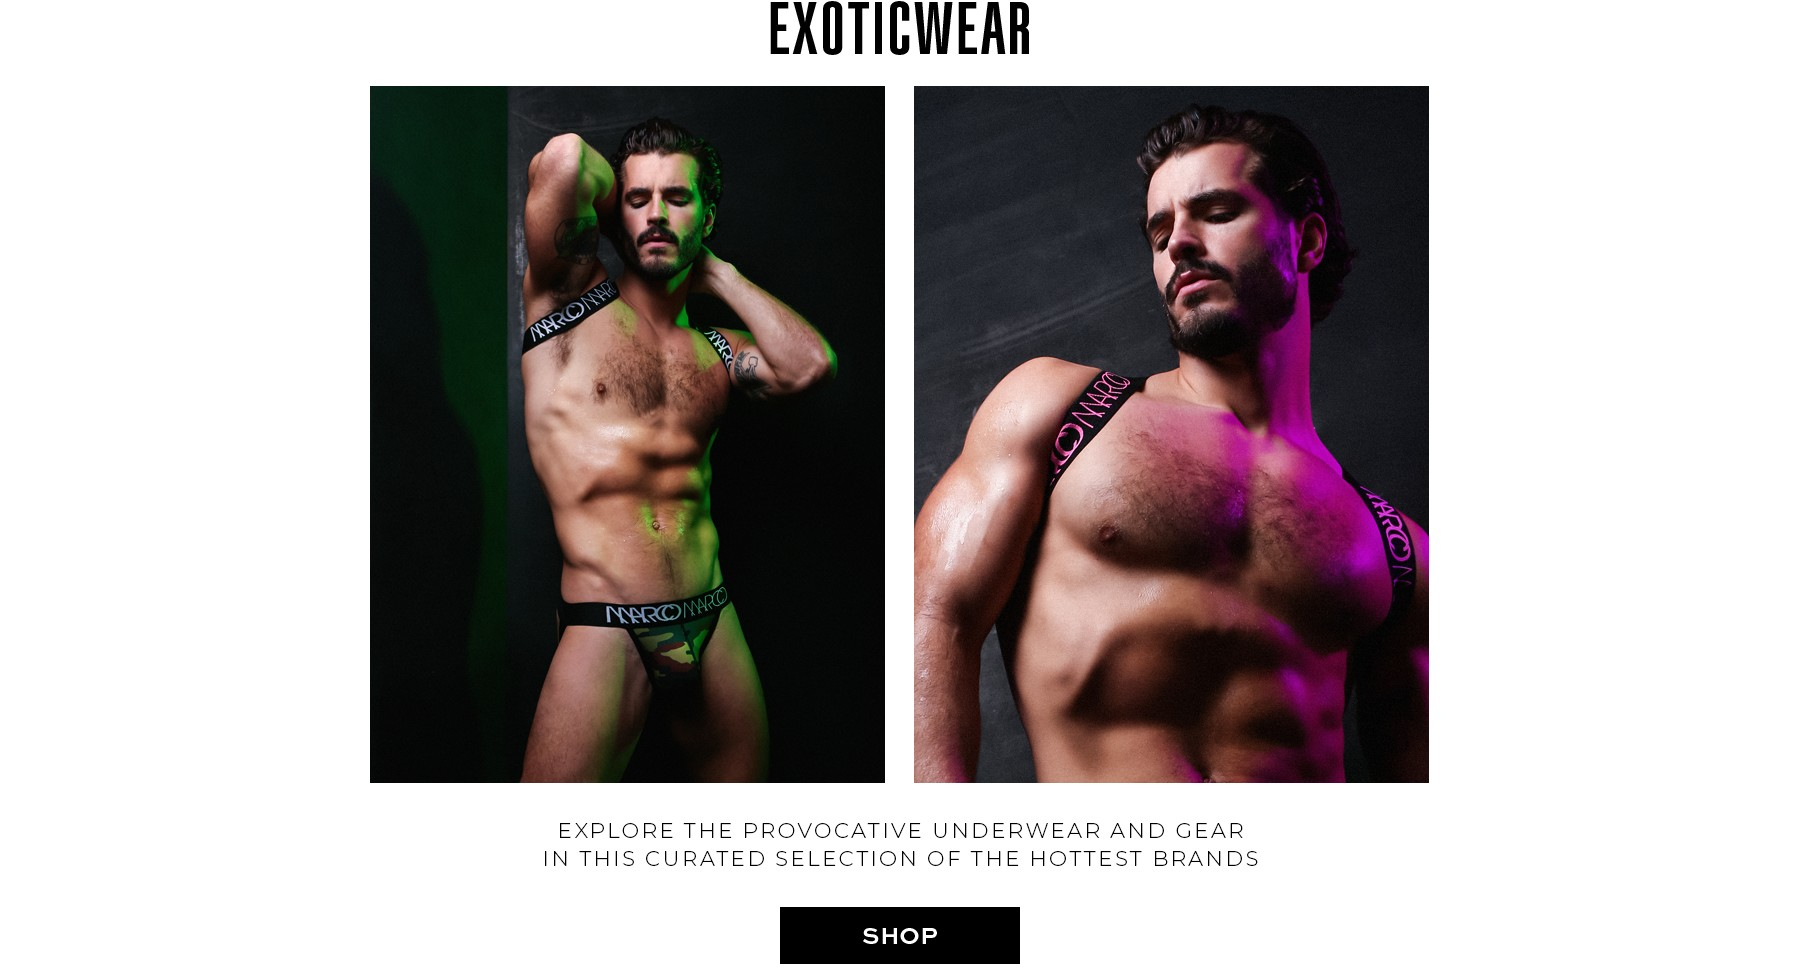 Provocative underwear and gear